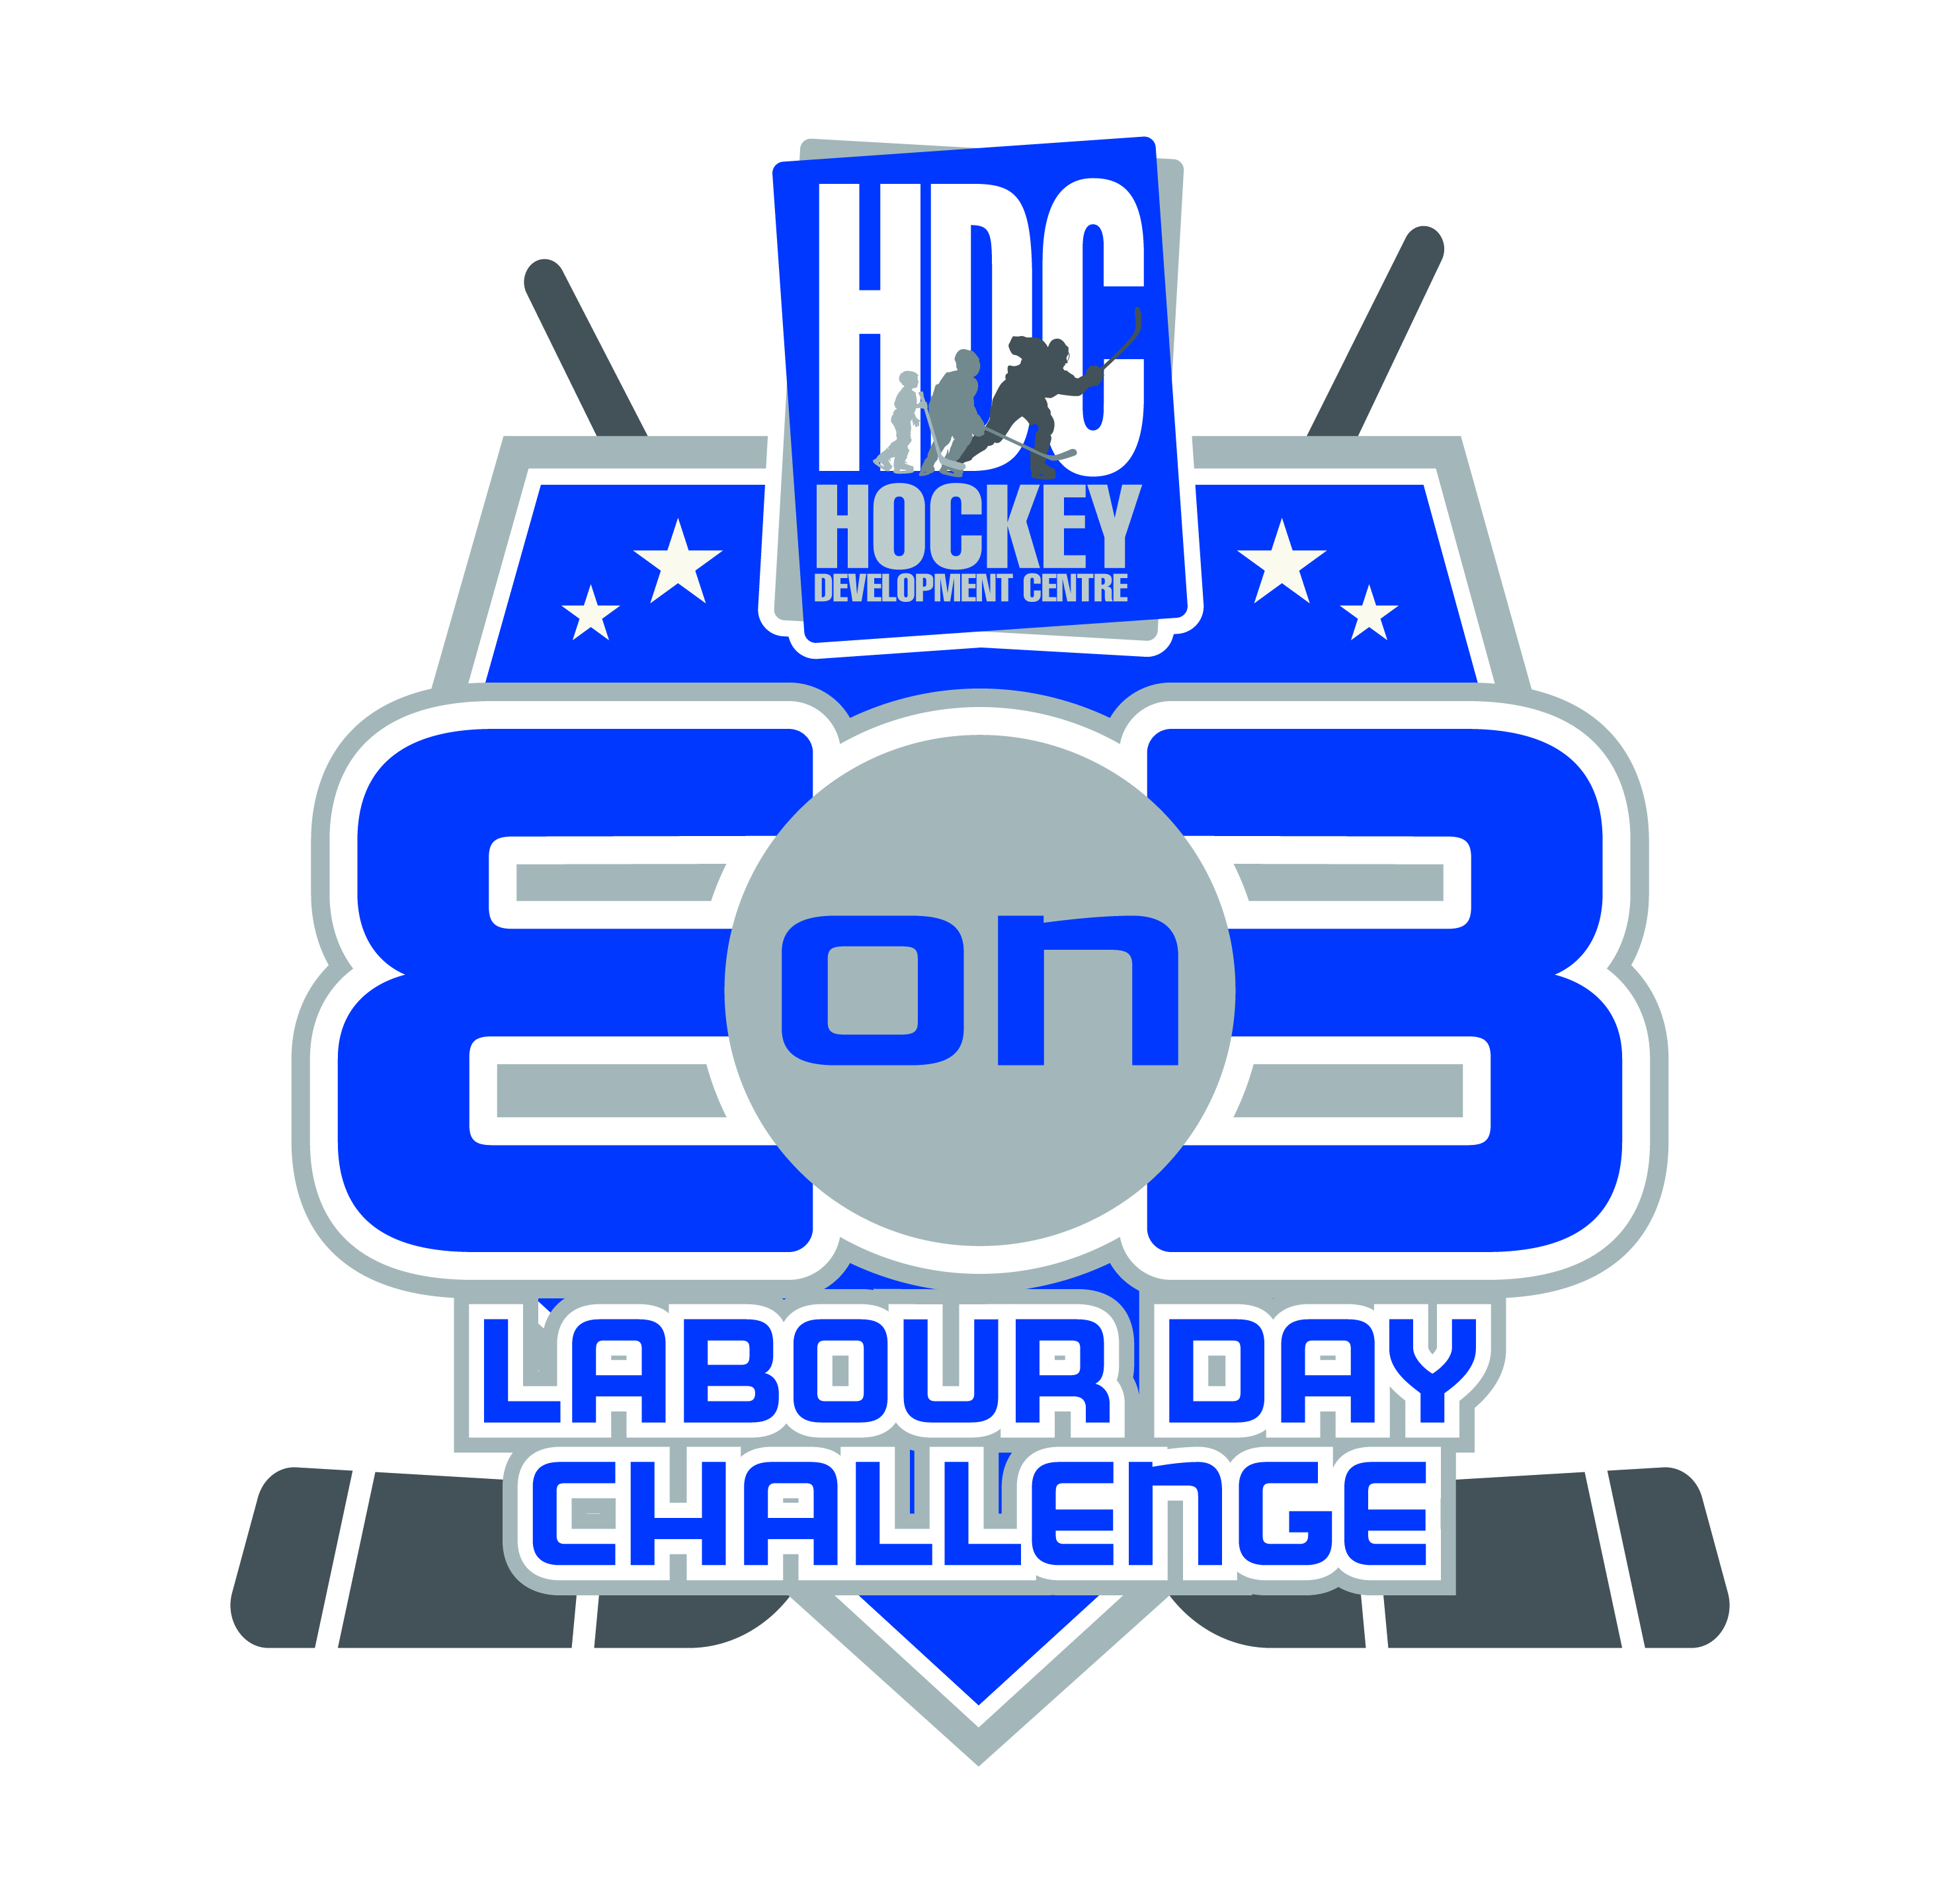 Labour Day Challenge